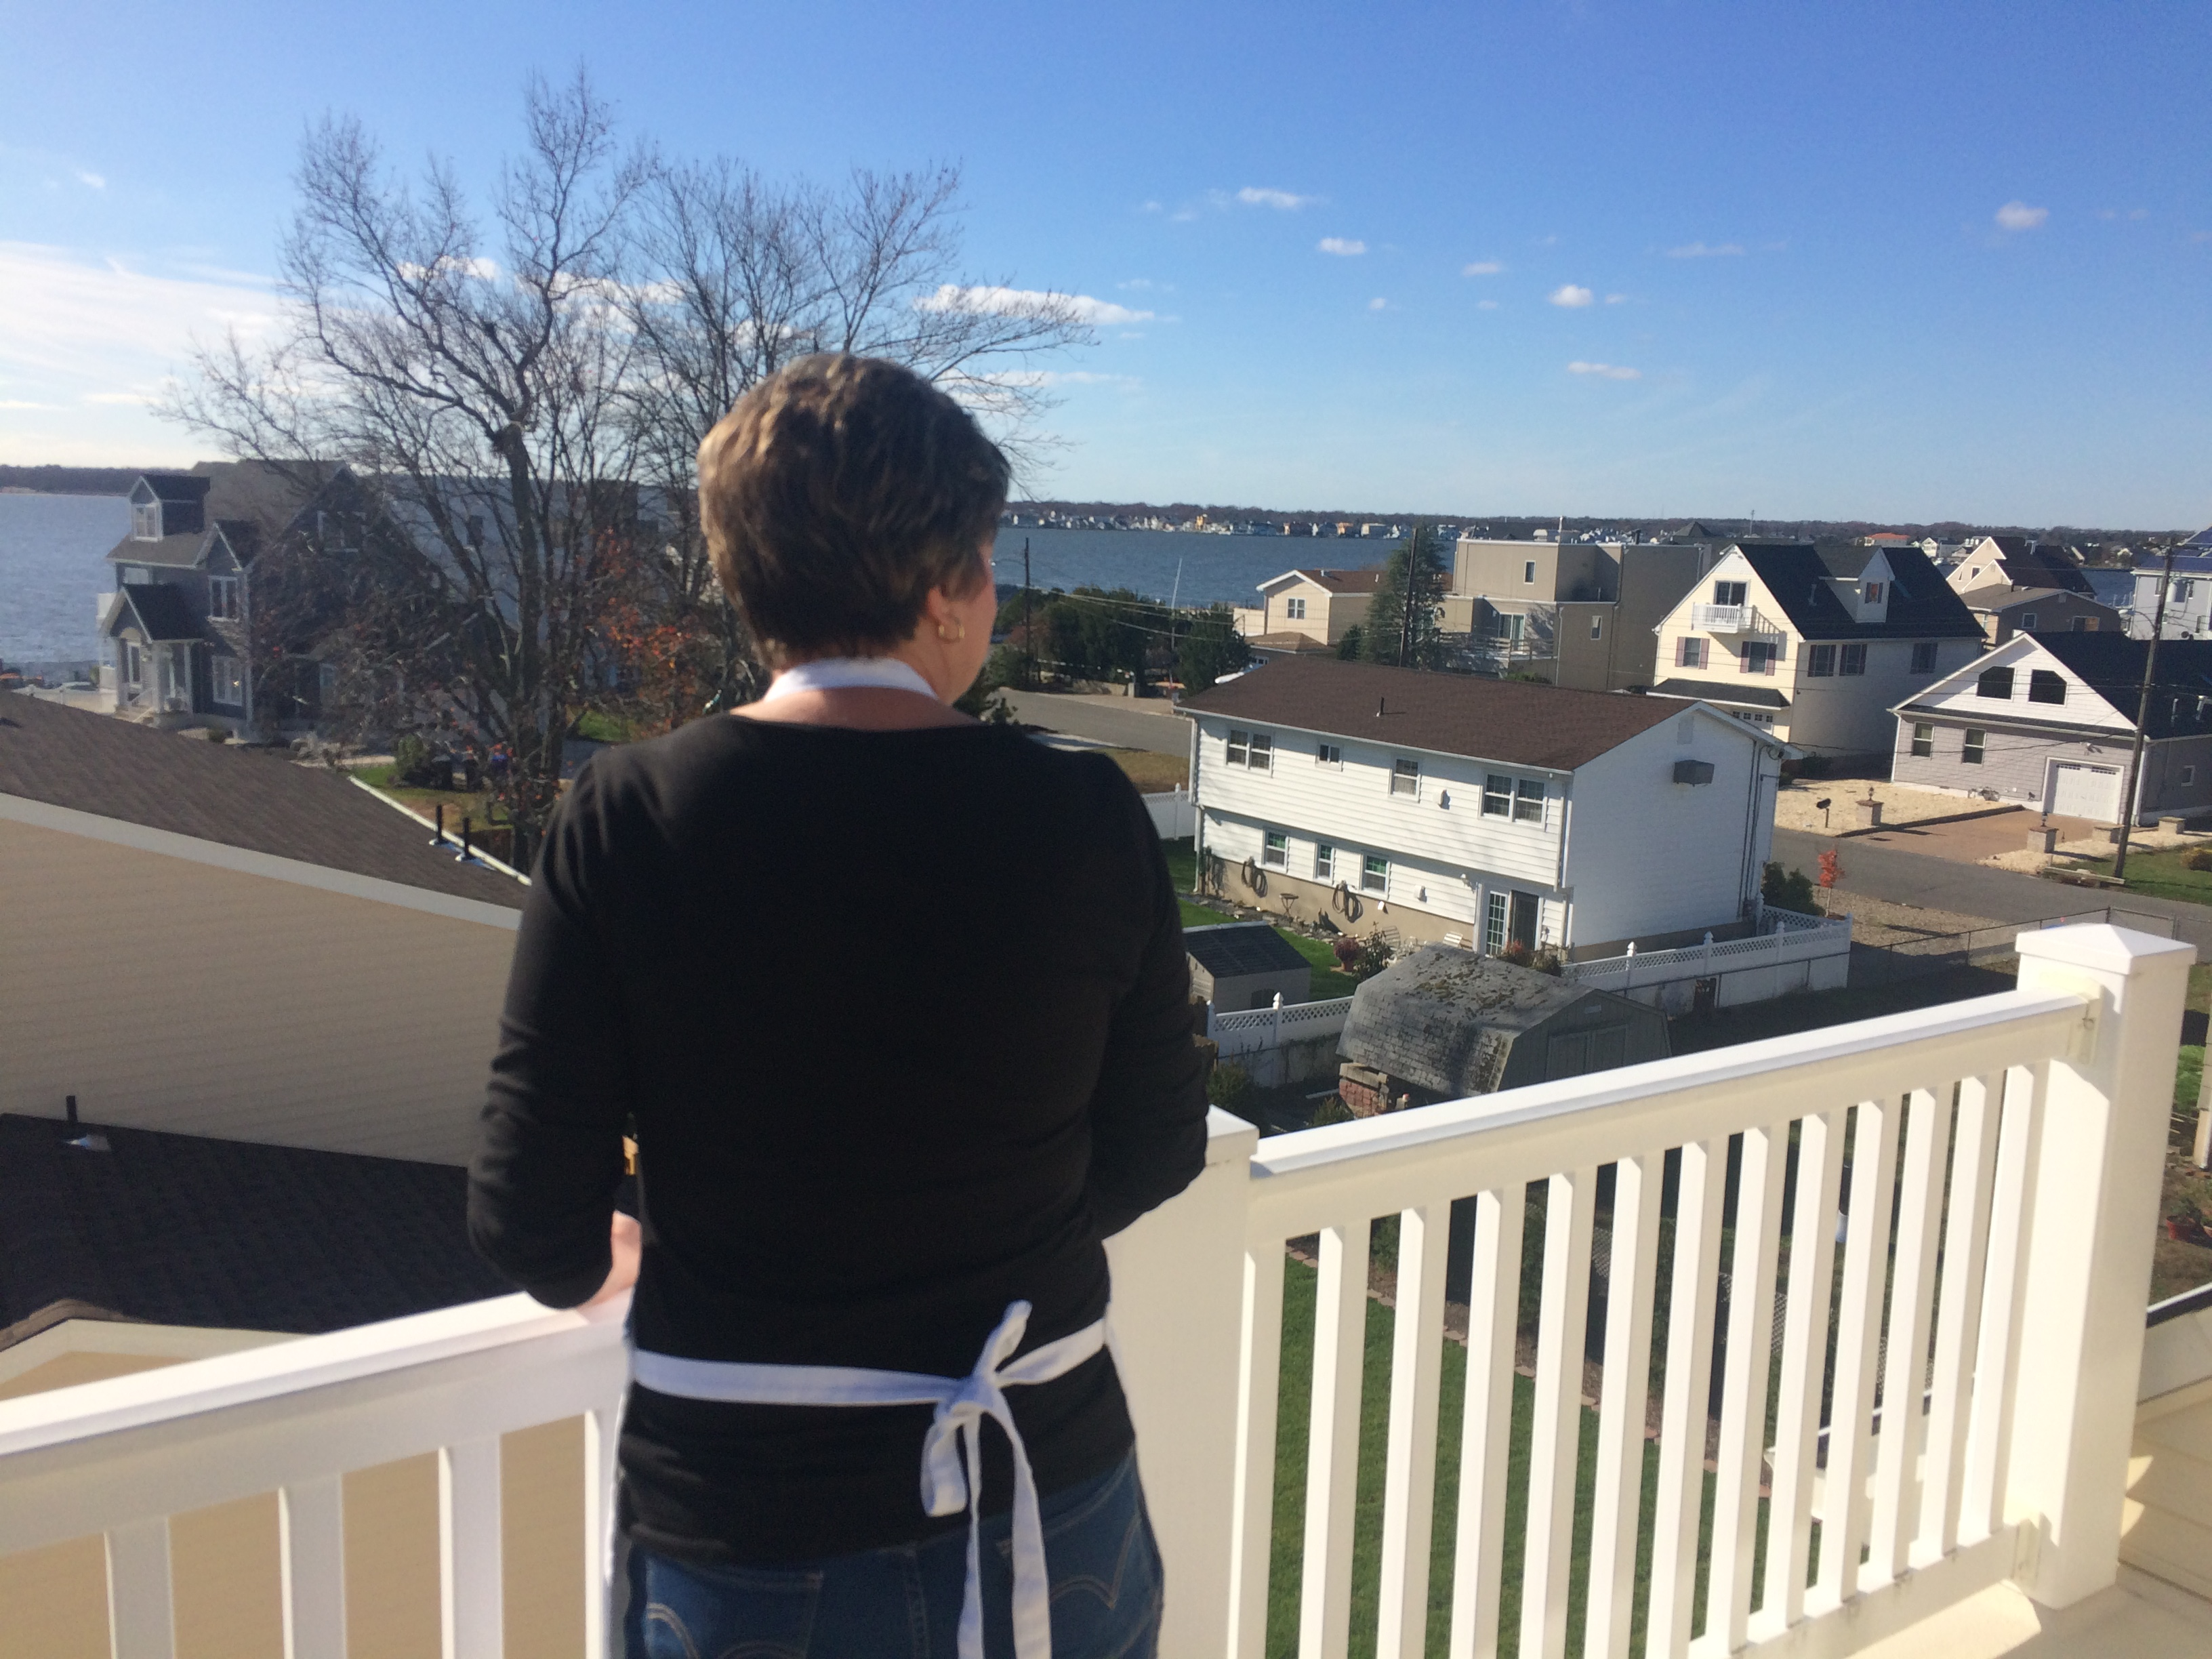 Caption: Anne Berardi says a lot has changed after the storm as she overlooks her neighborhood from her balcony., Credit: Colleen Callander